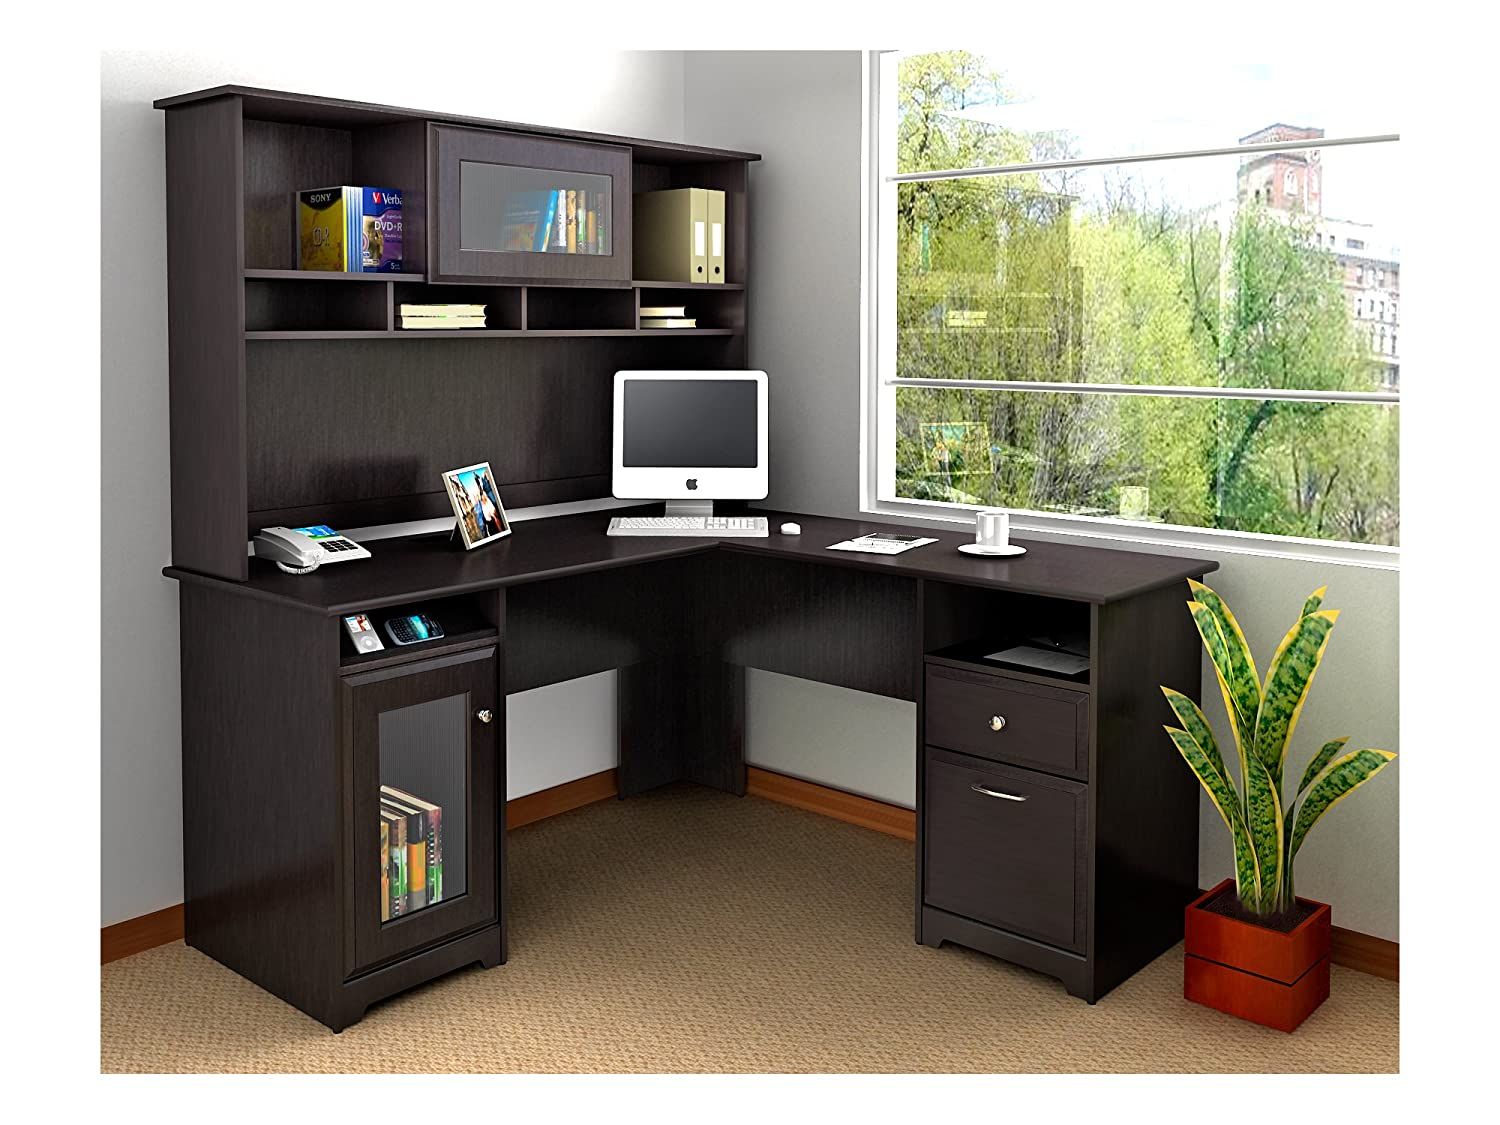 Cabot L Shaped Desk With Hutch: Top 20 Best Home Office Desks Reviews 2019-2020 On